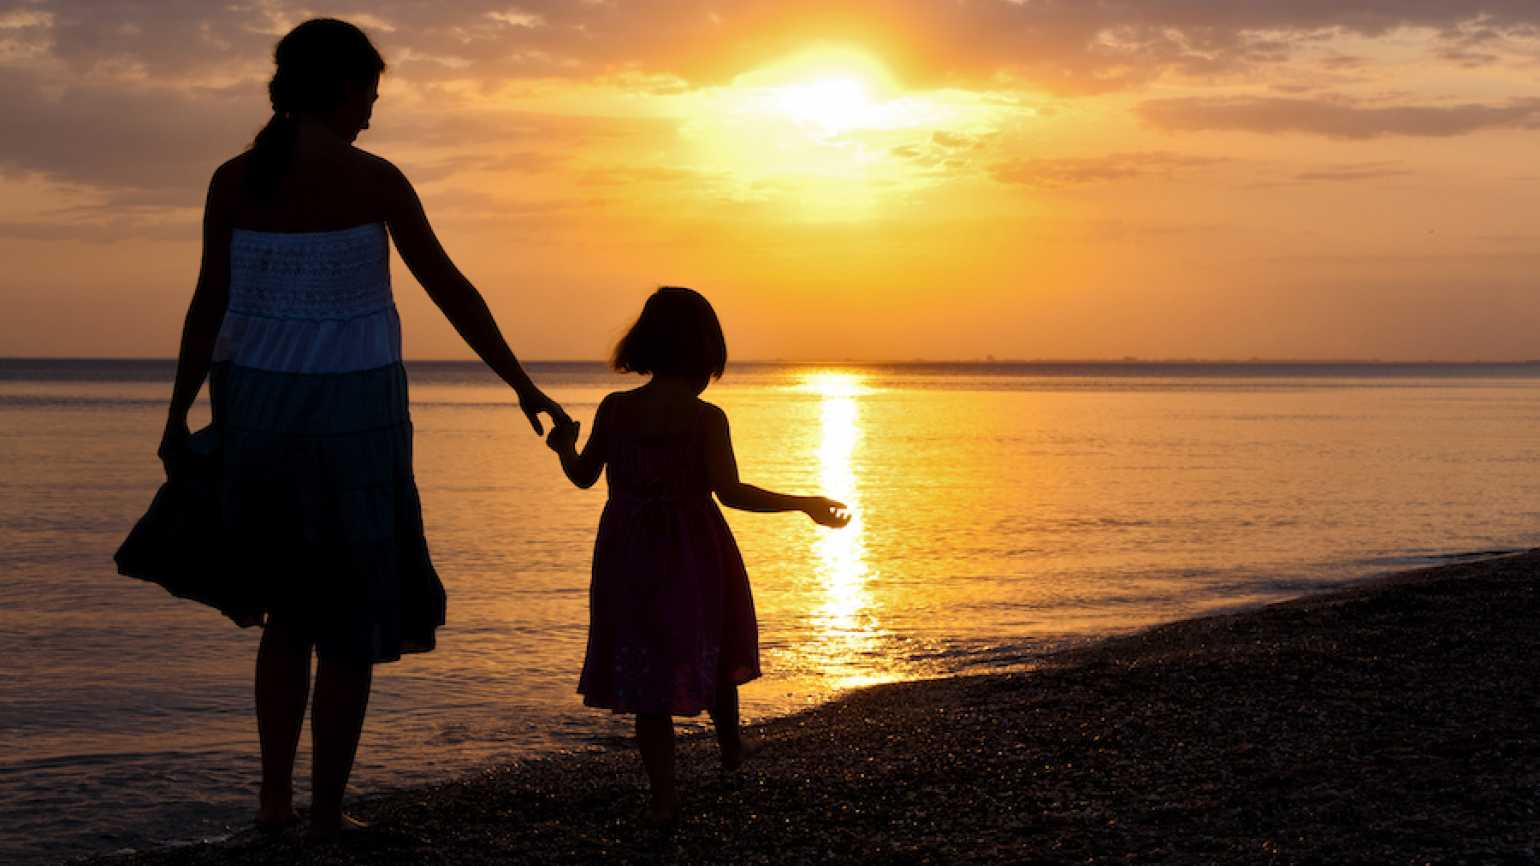 Mother and daughter walking at sunset (Thinkstock)